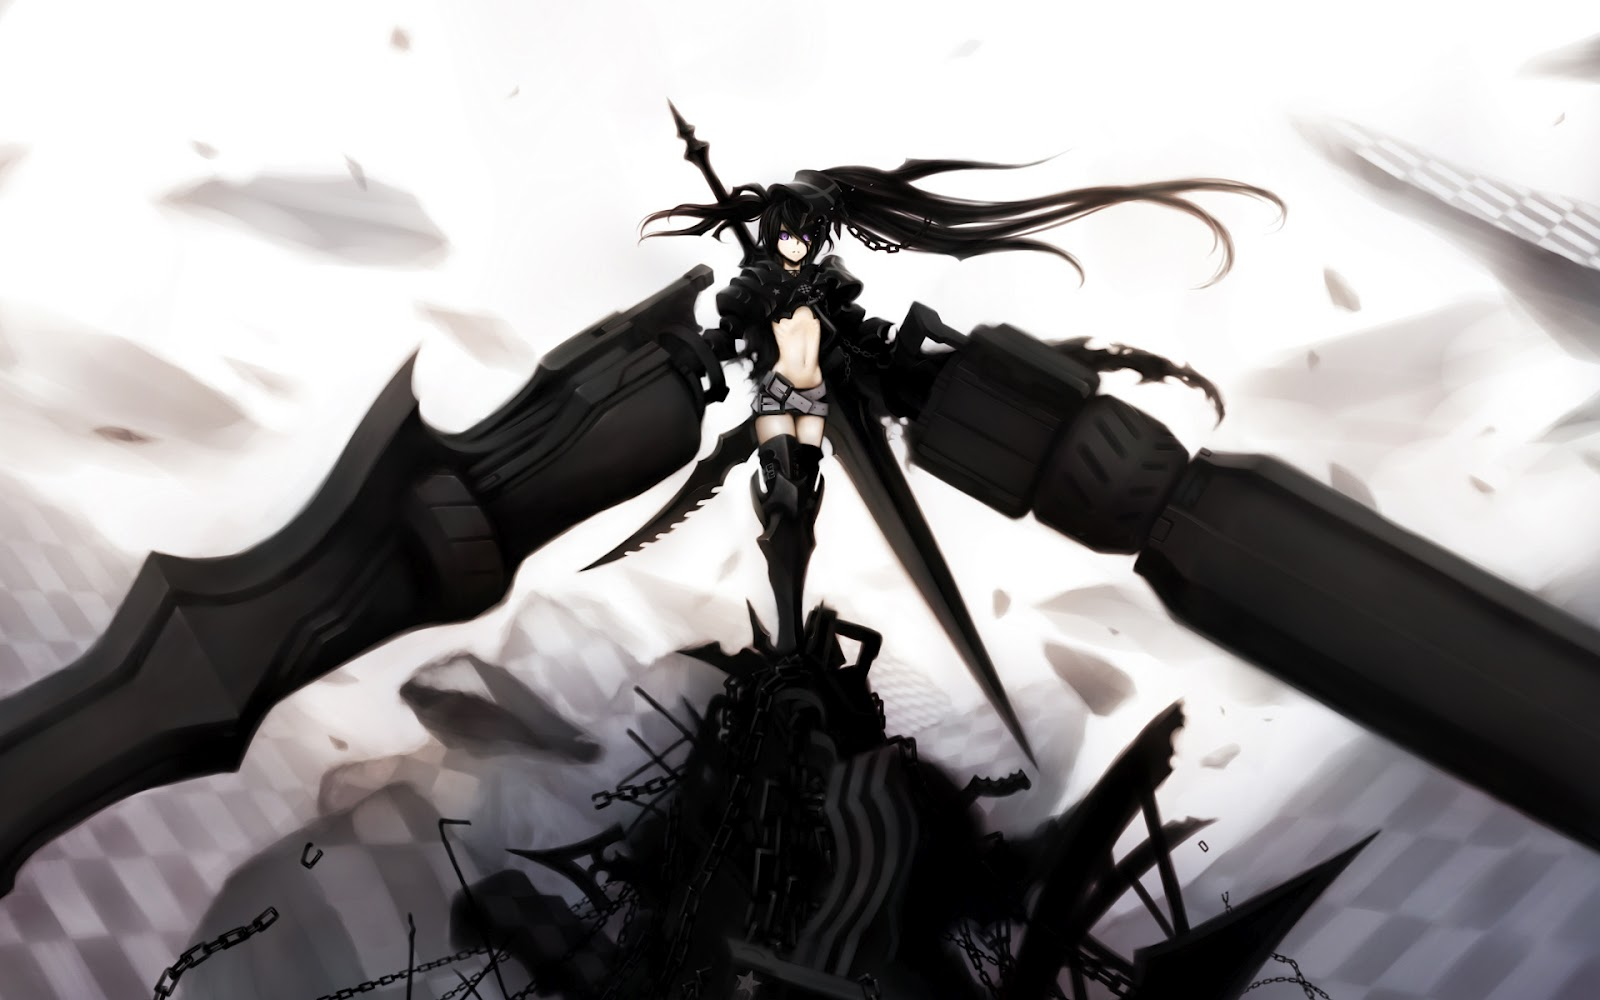 The Zeonic Geofront Black Rock Shooter Anime Impressions